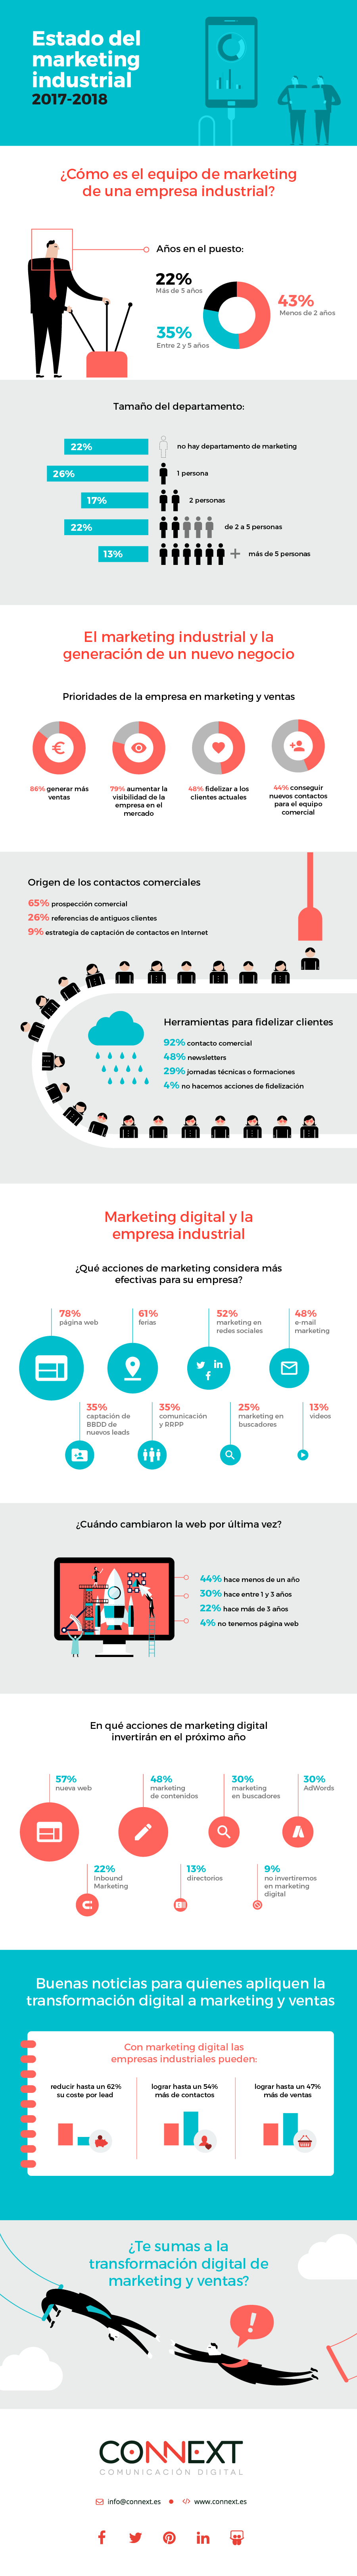 infografia-estado-marketing-industrial